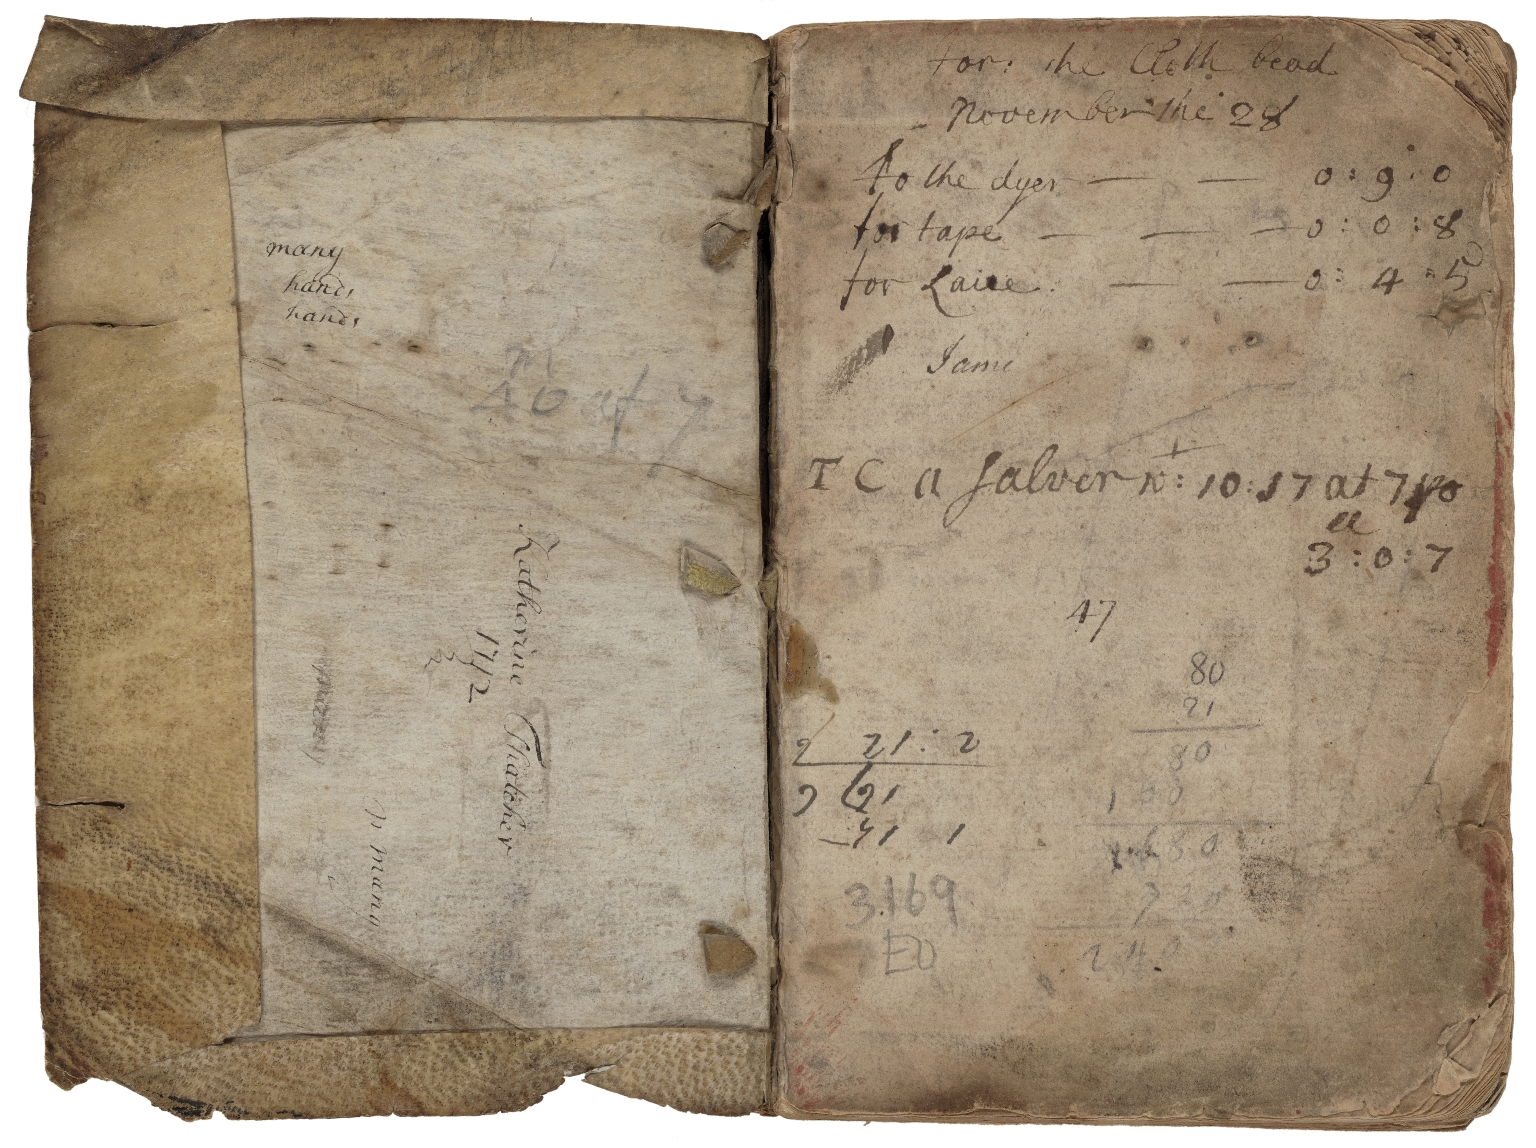 Medicinal and cookery recipes of Mary Baumfylde [manuscript].